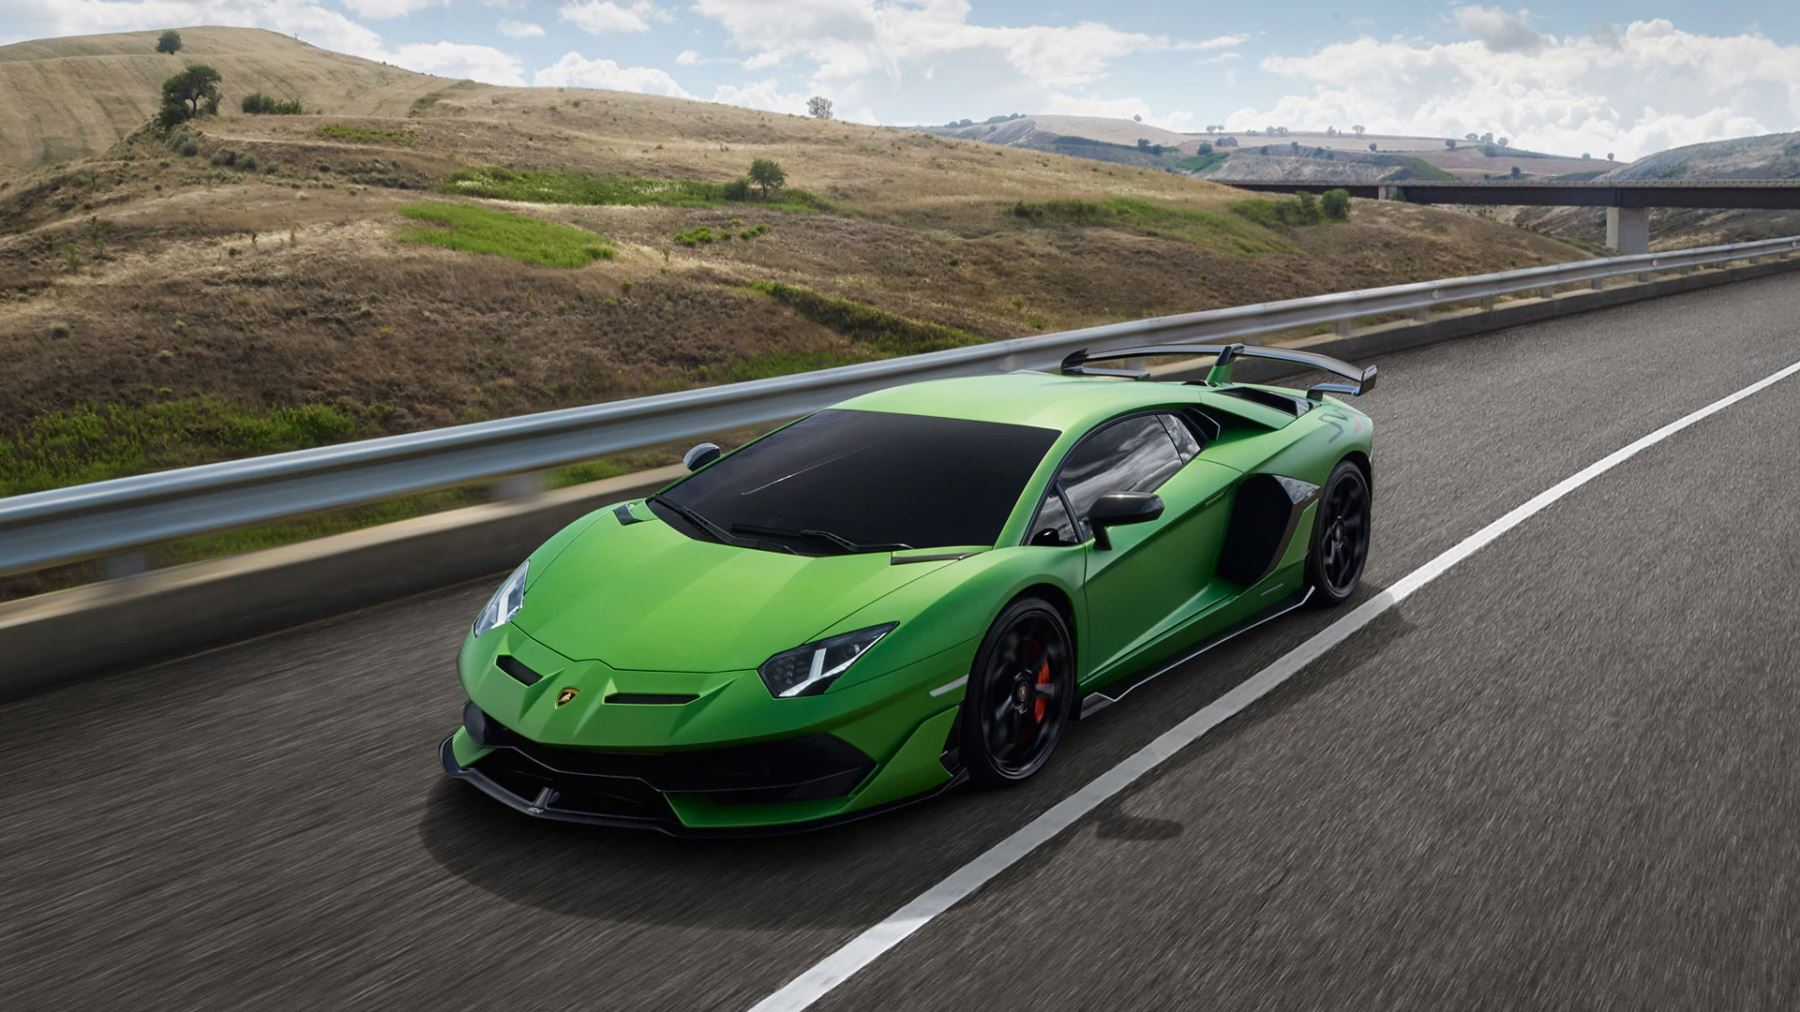 Lamborghini Aventador SVJ Coupe - Real Emotions Shape The Future image 4